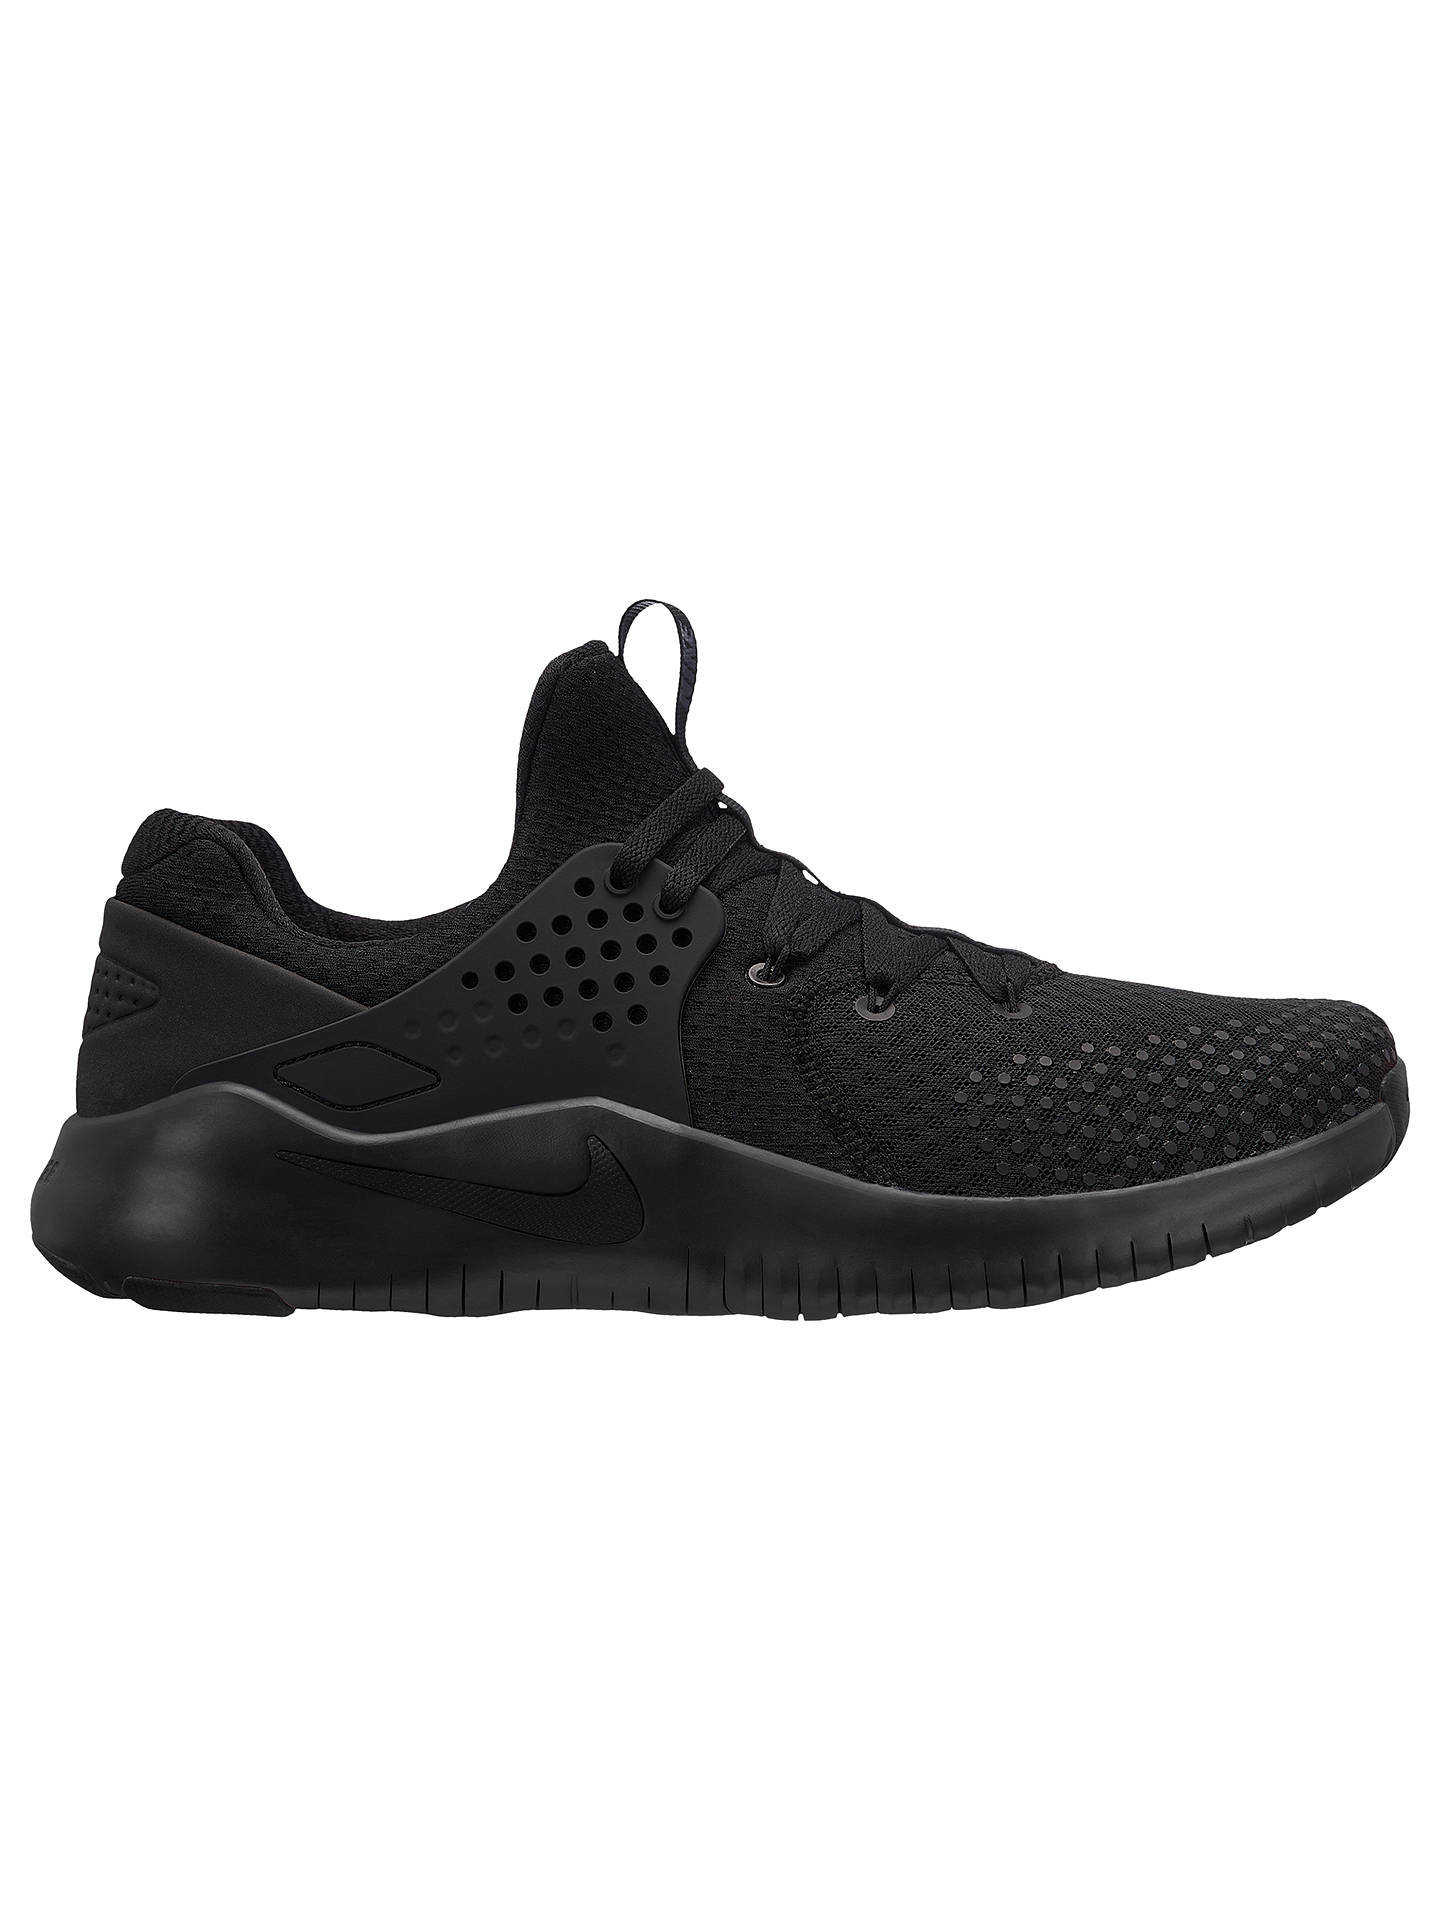 08aaa67c3078b Buy Nike Free Trainer v8 Men s Training Shoes